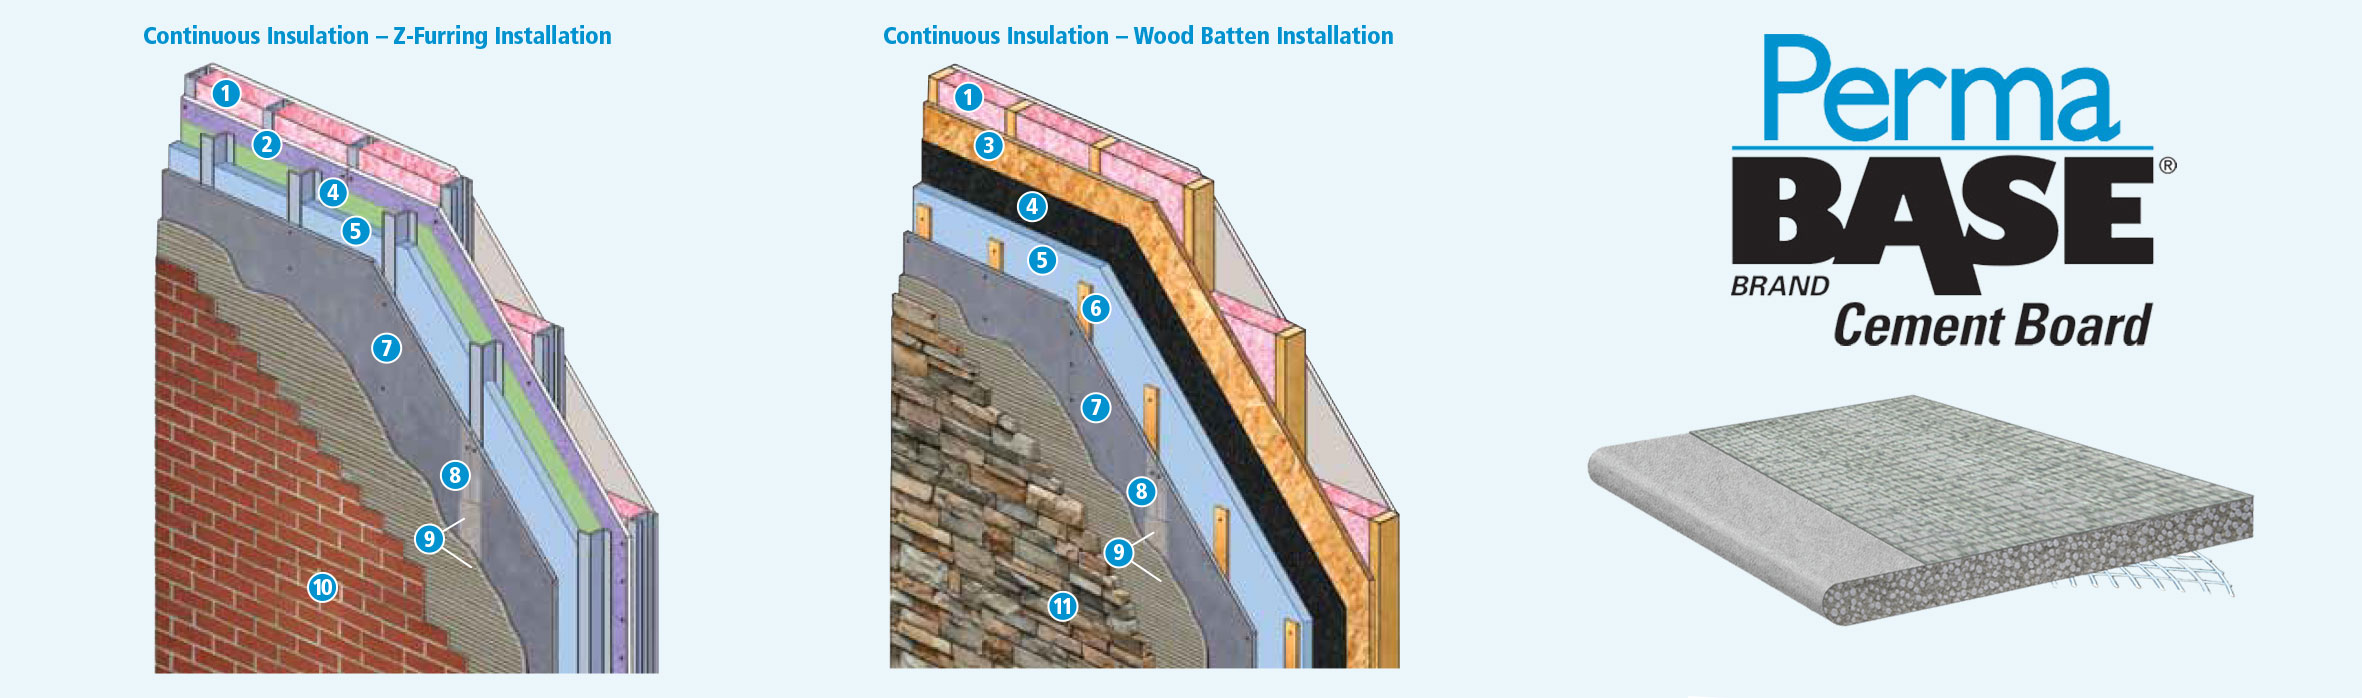 Continuous insulation with permabase cement board laydex for Exterior z furring channel